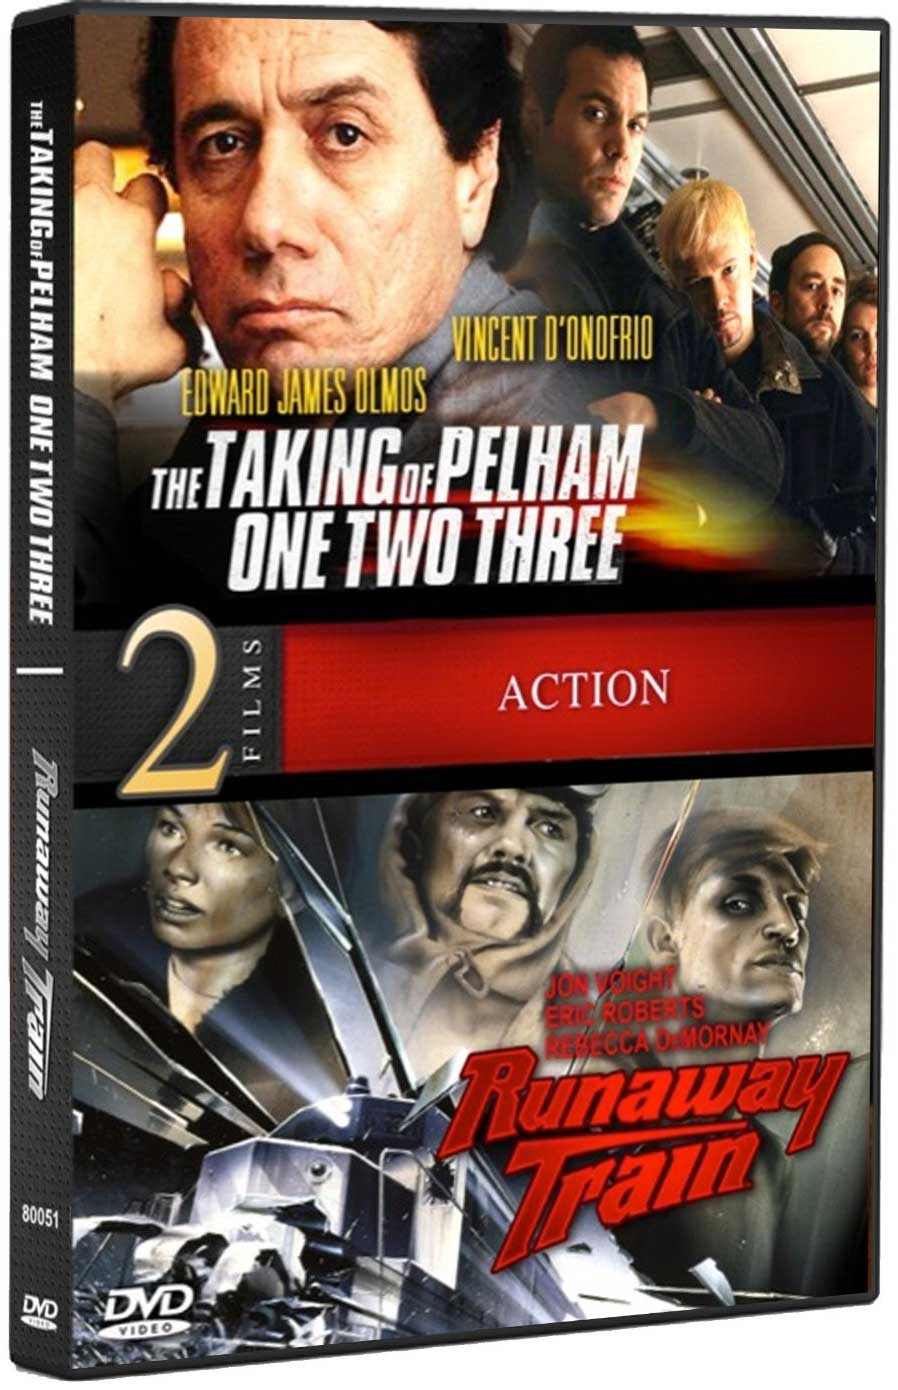 Movie: Runaway Train & The Taking of Pelham One Two Three DVD Train Video Misc Producers 80051 011891800518